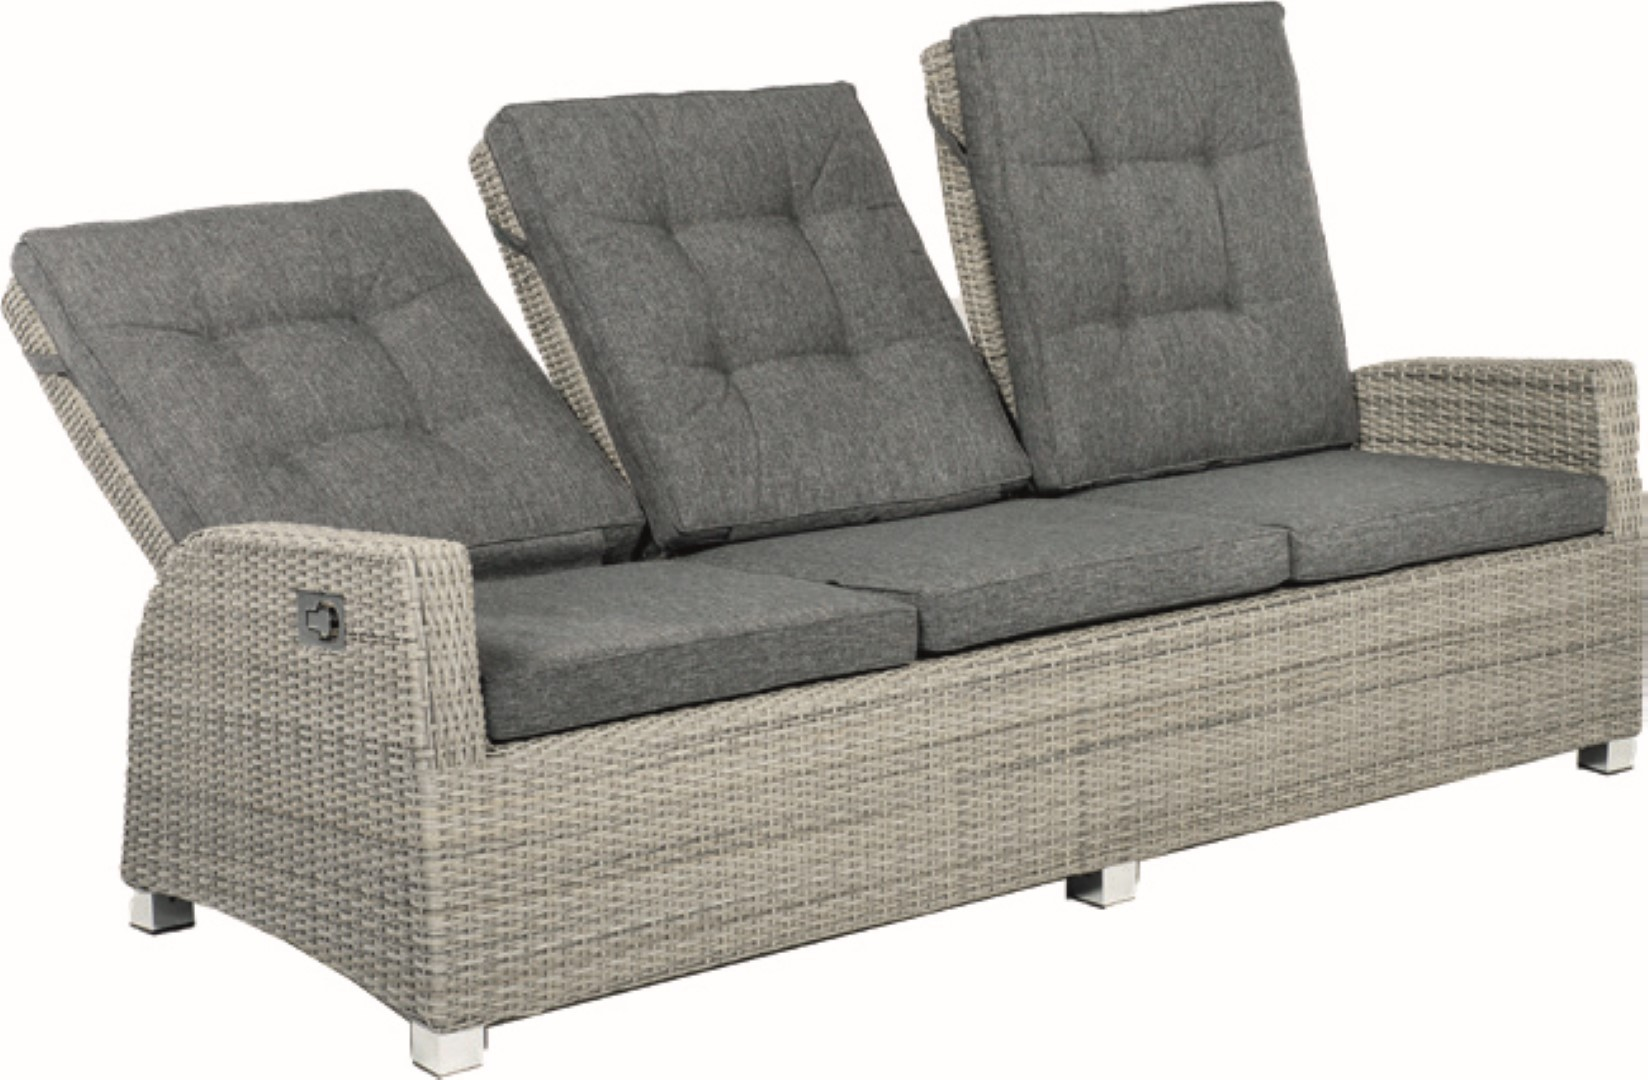 Barcelona Lounge Bench 3-seater